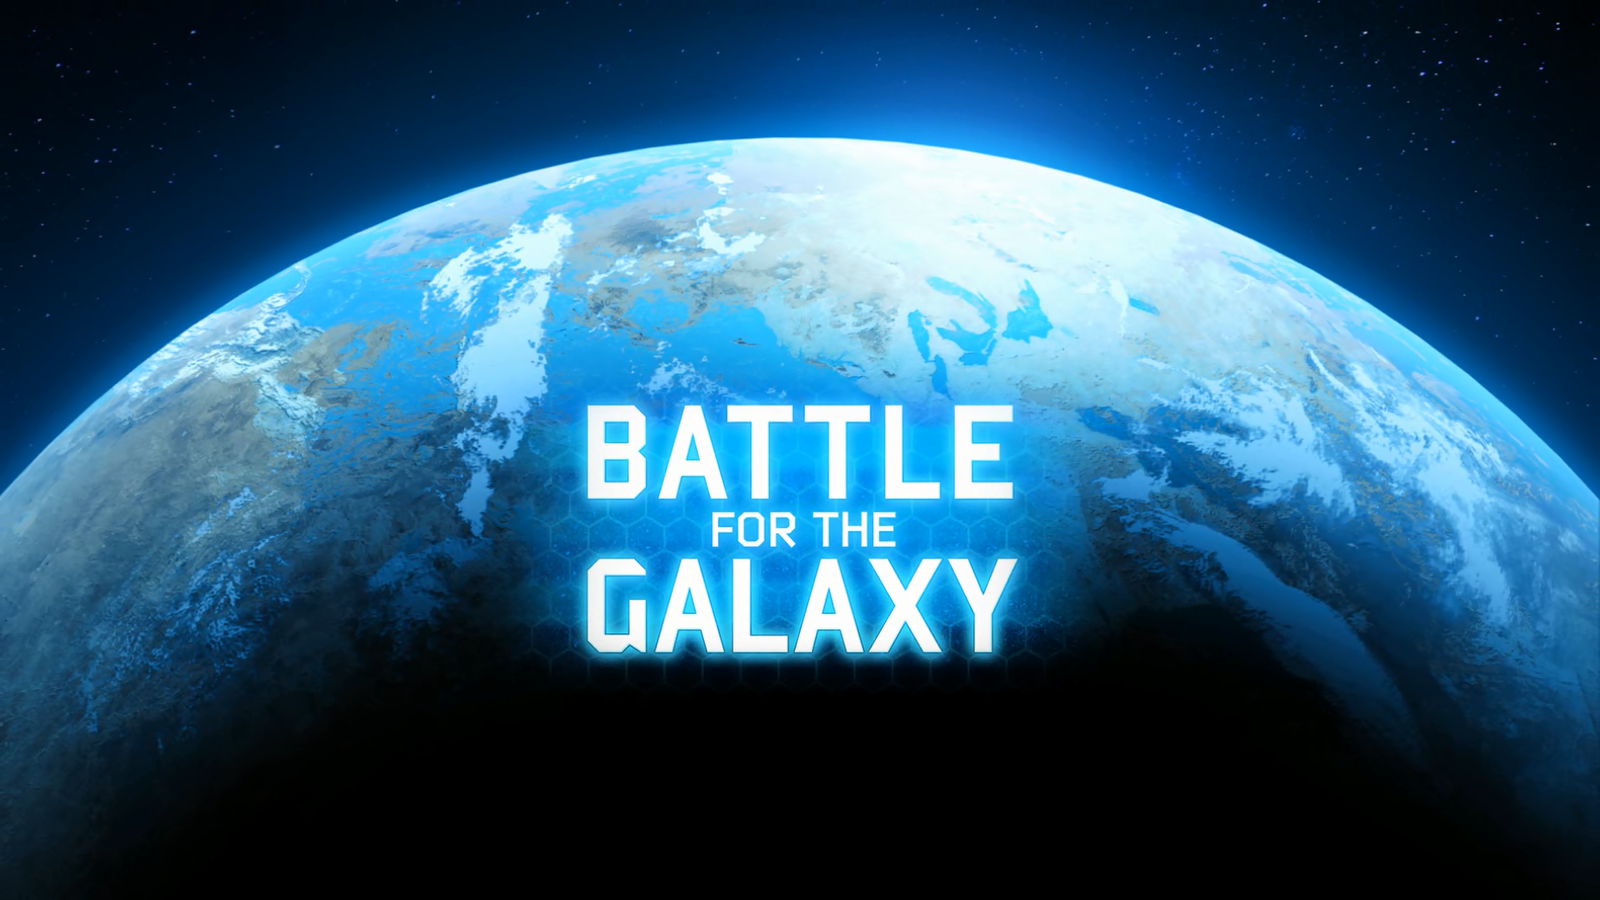 Some One Playing Video Game Png On Screen - File:Battle for the Galaxy, video game logo screen.png - Wikimedia ...